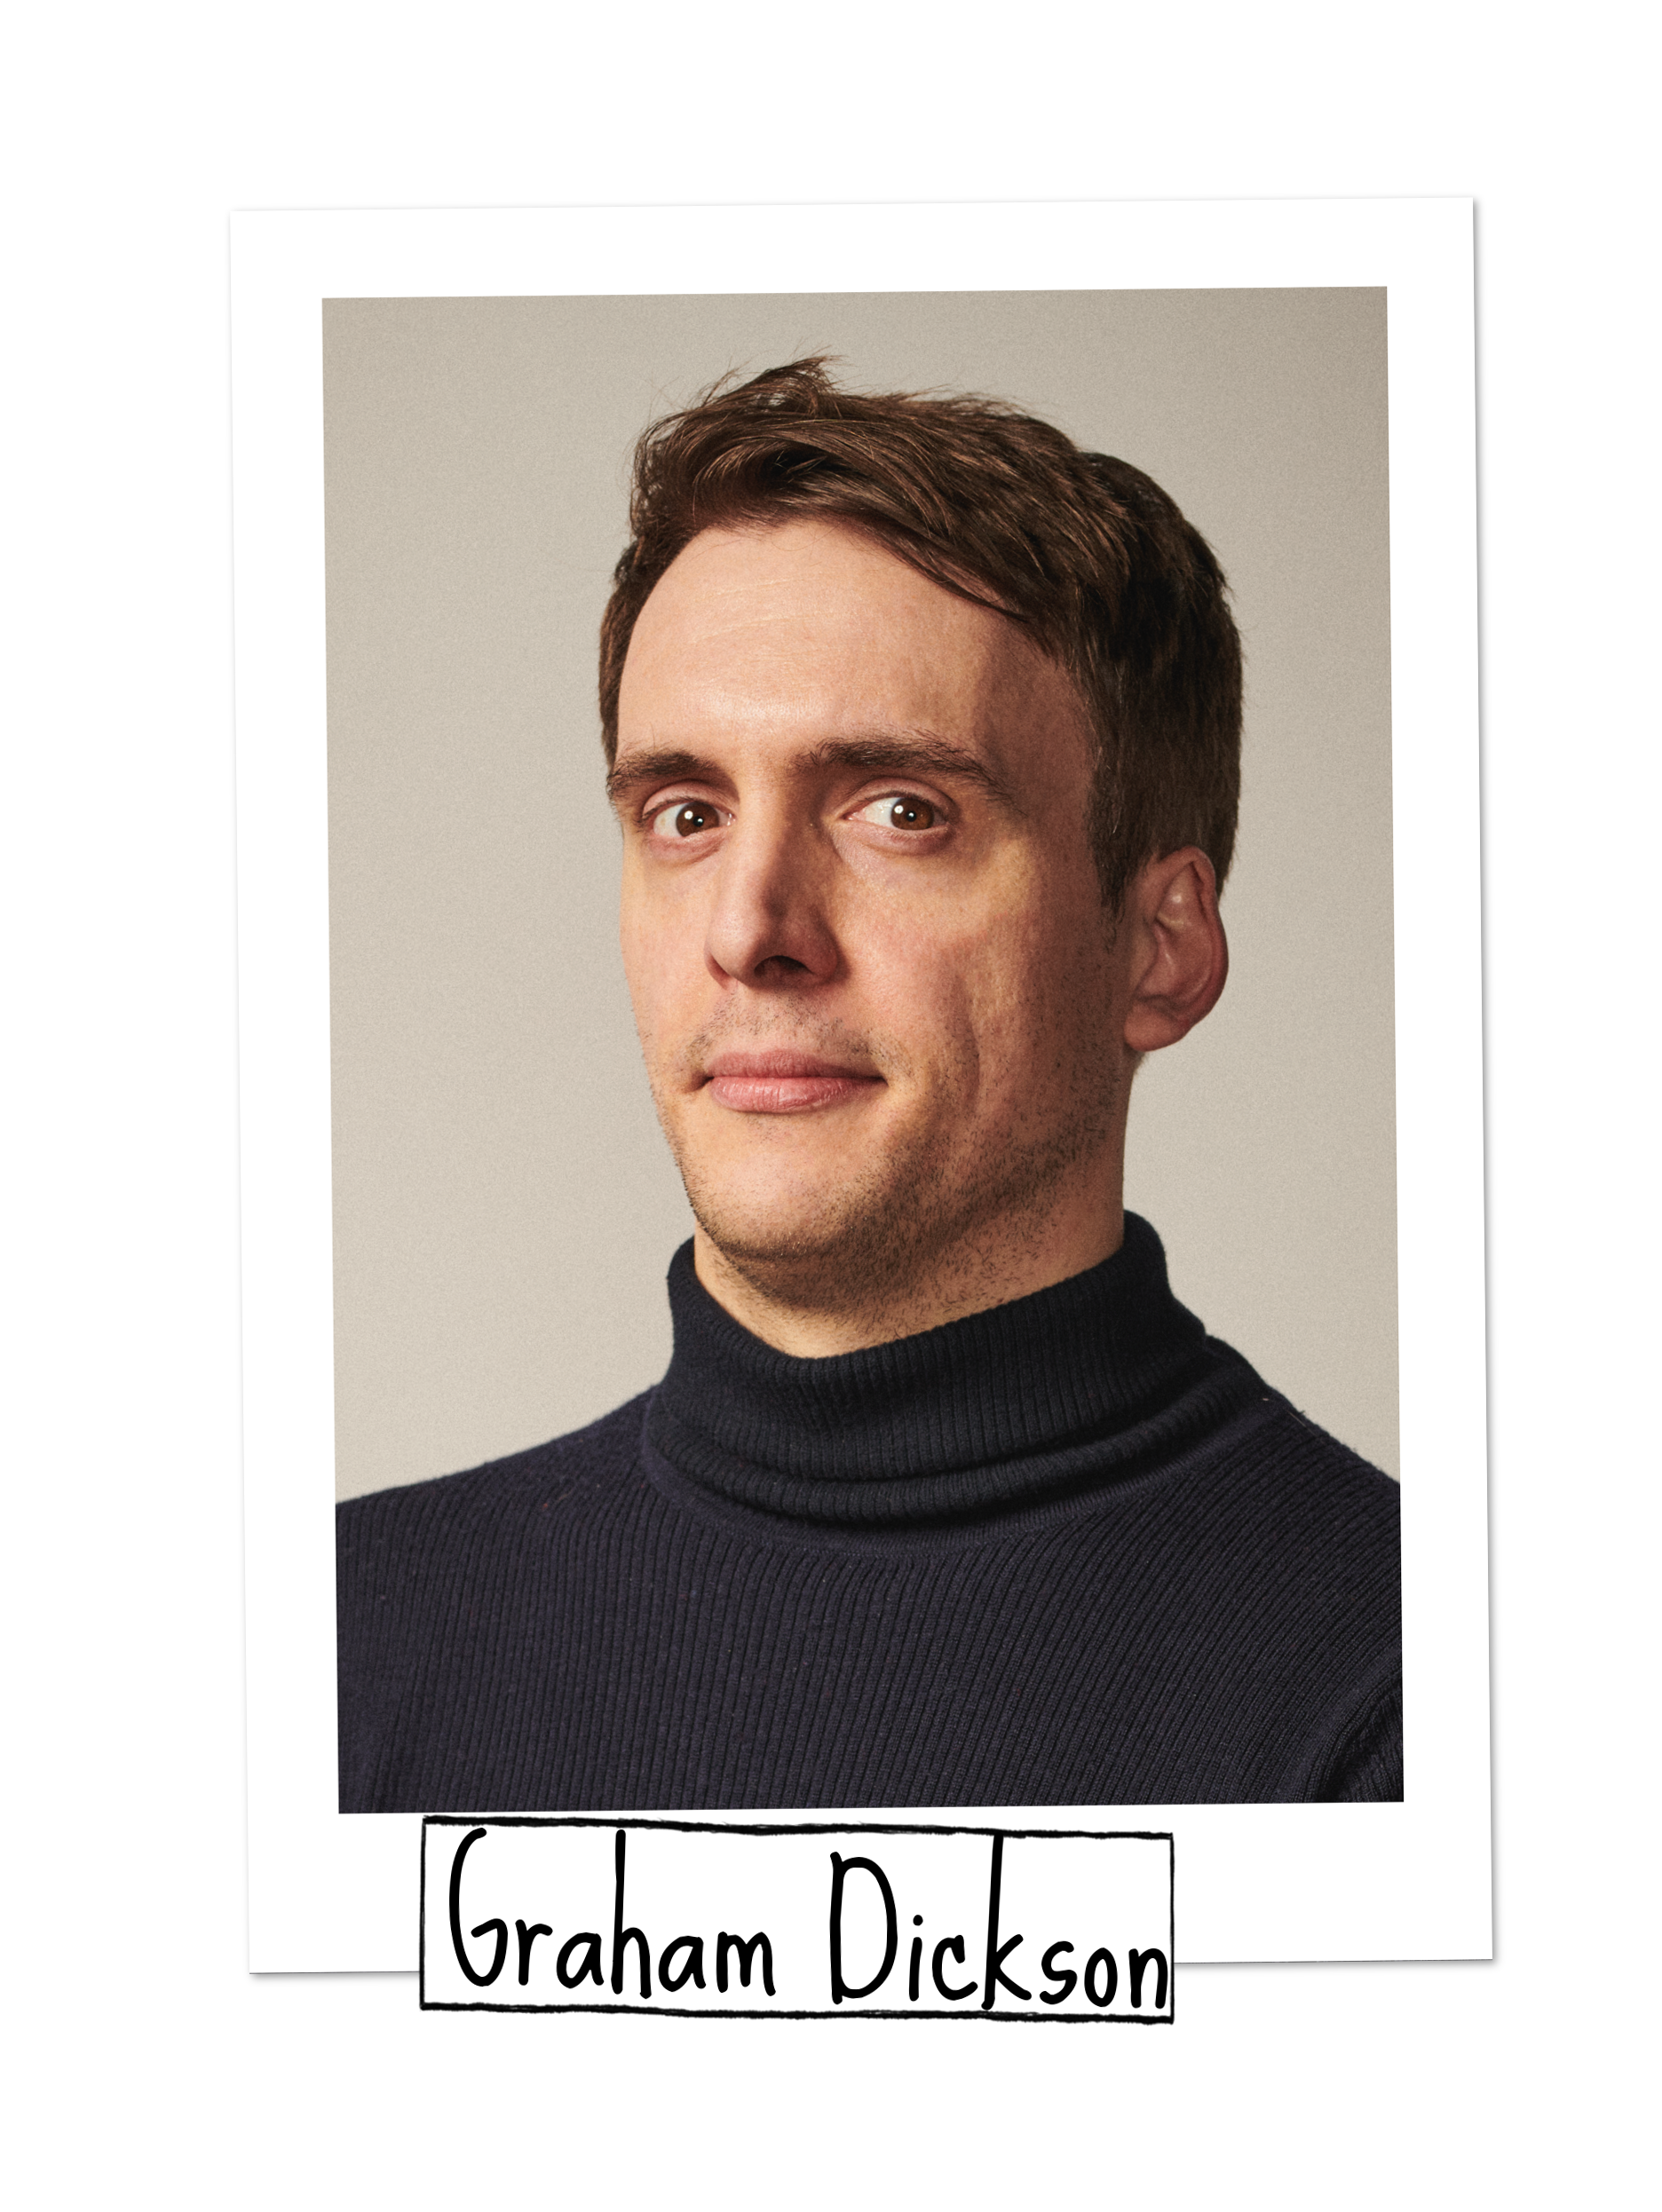 Graham has been improvising for over 14 years. He began training at the renowned UCB Theatre in New York. He has also studied under David Shore in London and is a founding member of the award-winning Austentatious, and co-founder and Artistic Director of The Free Association. When not improvising, Graham is an actor and writer.